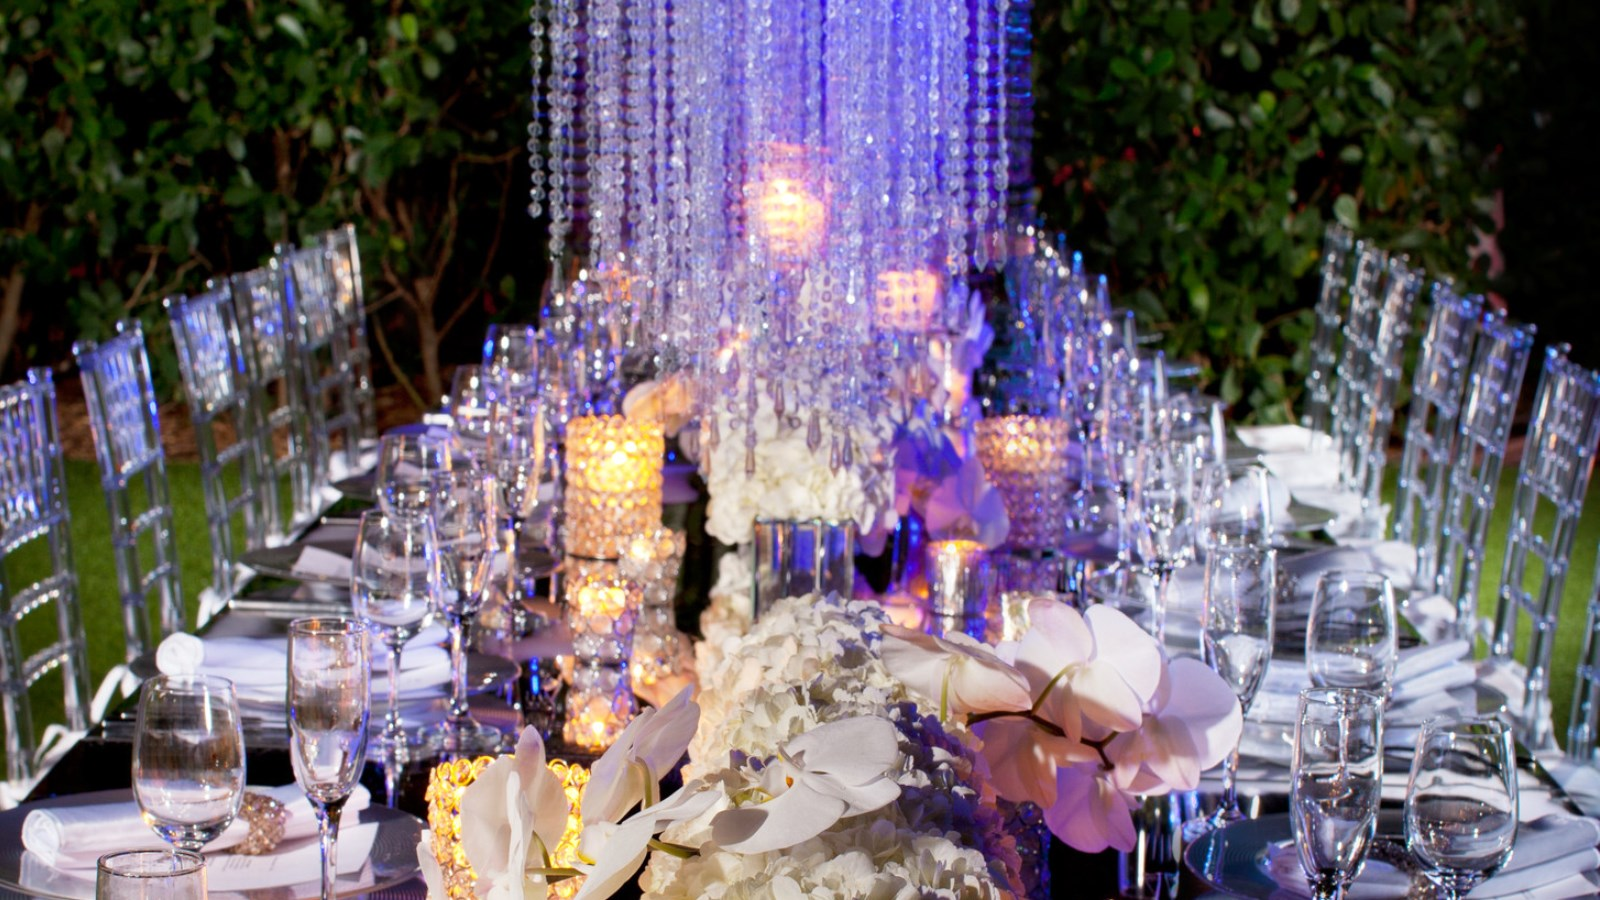 Wedding venues in miami south beach weddings w south beach wedding venues in miami lawn reception w south beach junglespirit Images